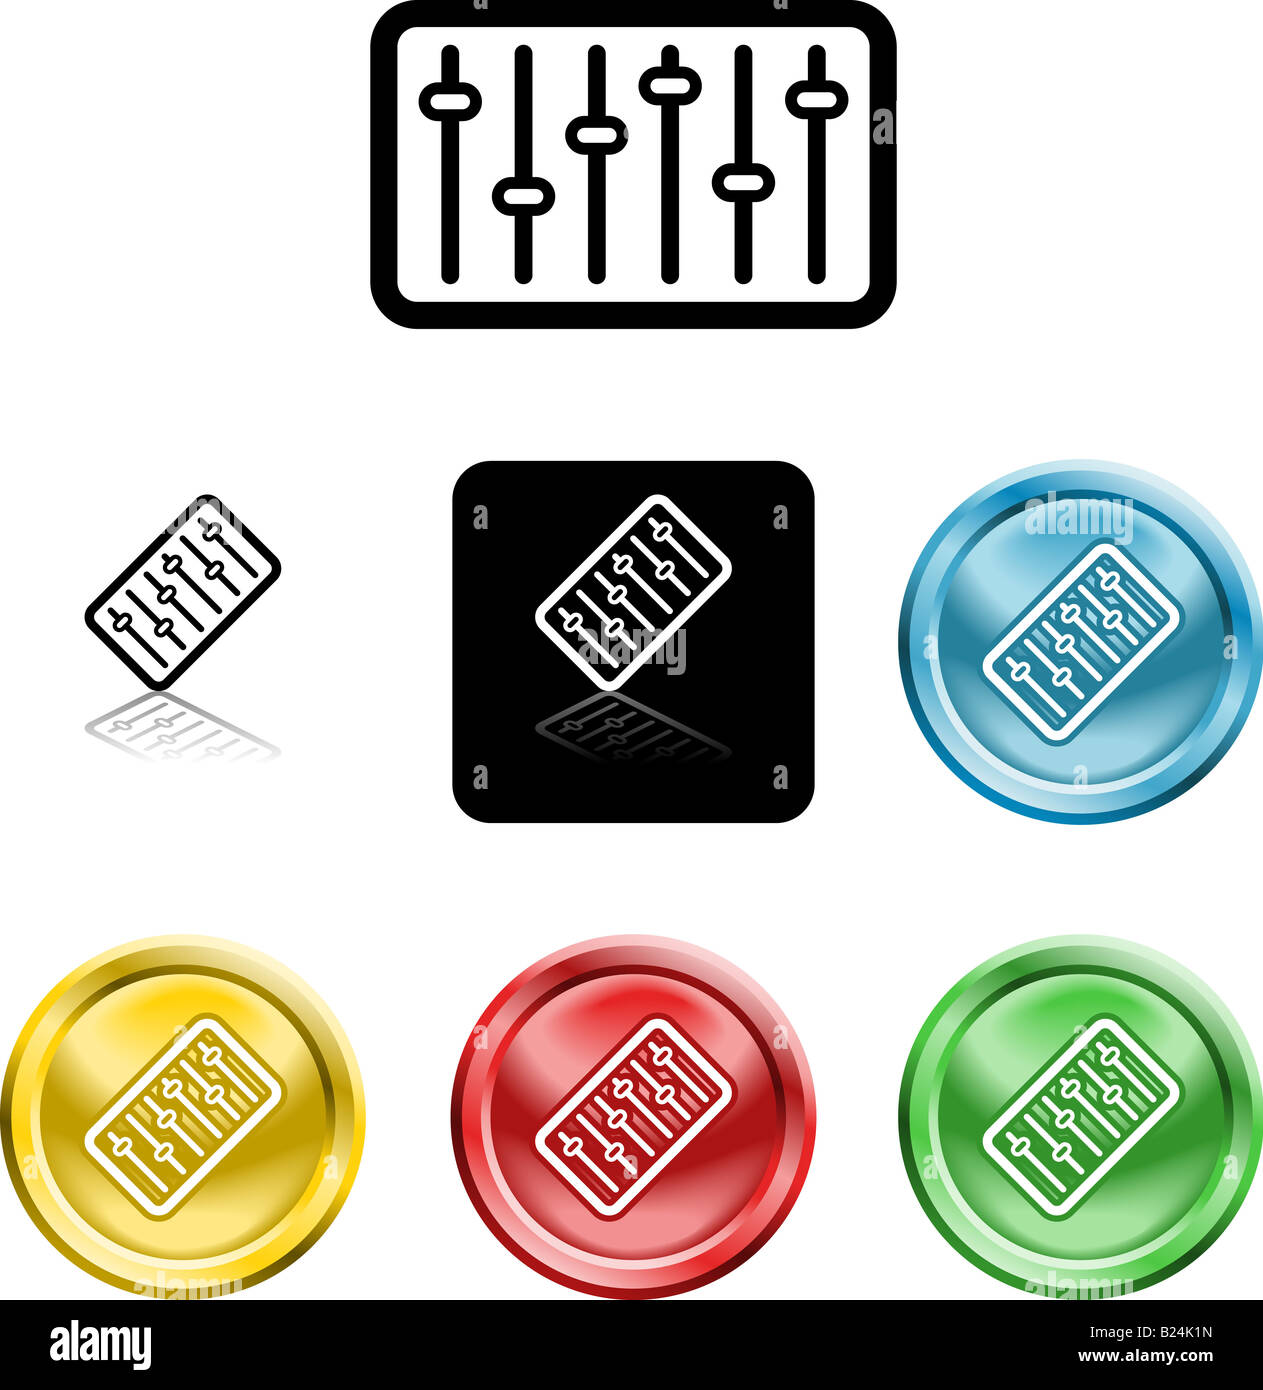 Several versions of an icon symbol of a stylised graphic or music mixer or equaliser - Stock Image